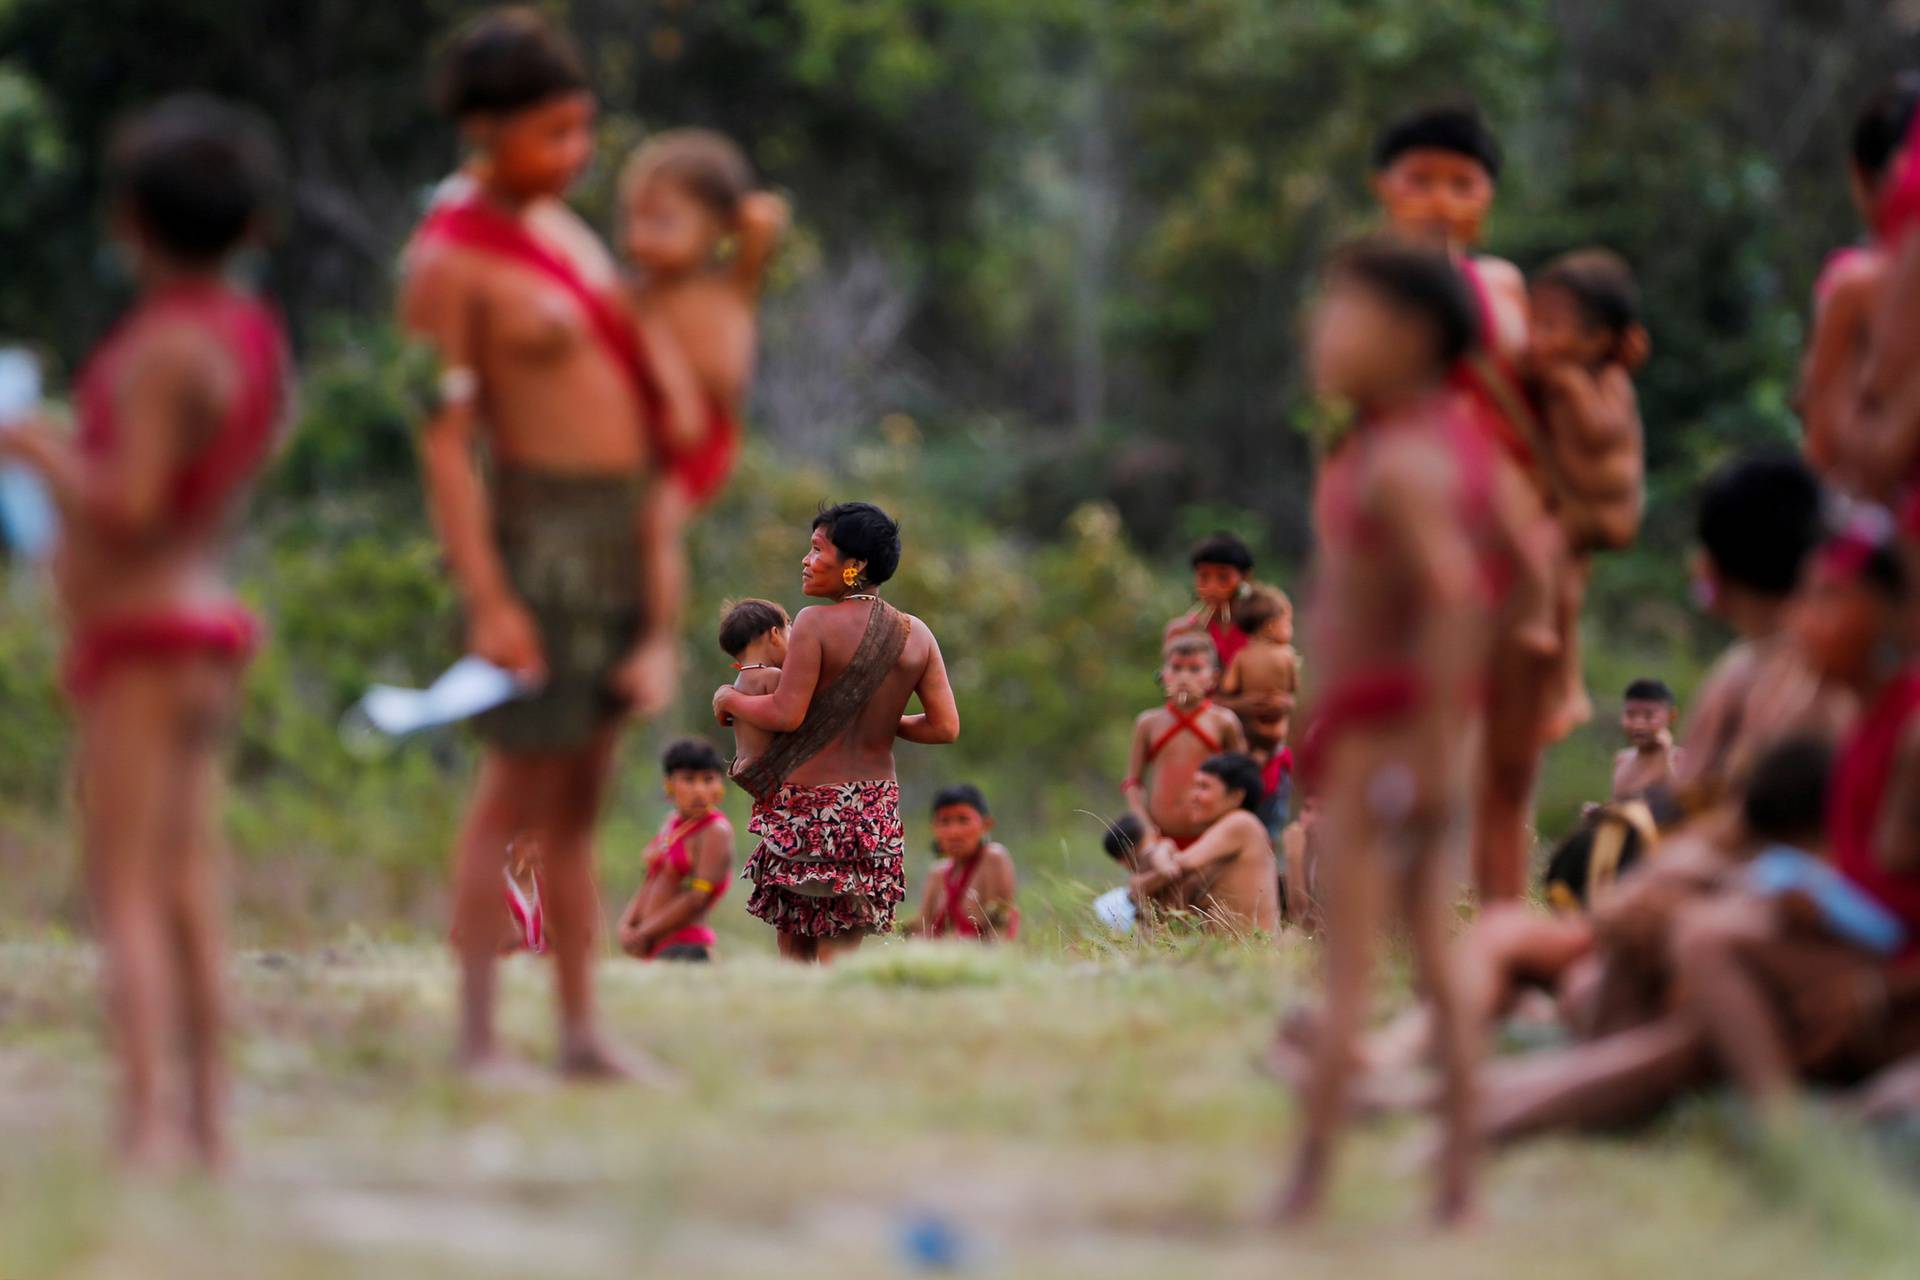 Indigenous from Yanomami ethnic group are seen at the 4th Surucucu Special Frontier Platoon of the Brazilian army in the municipality of Alto Alegre